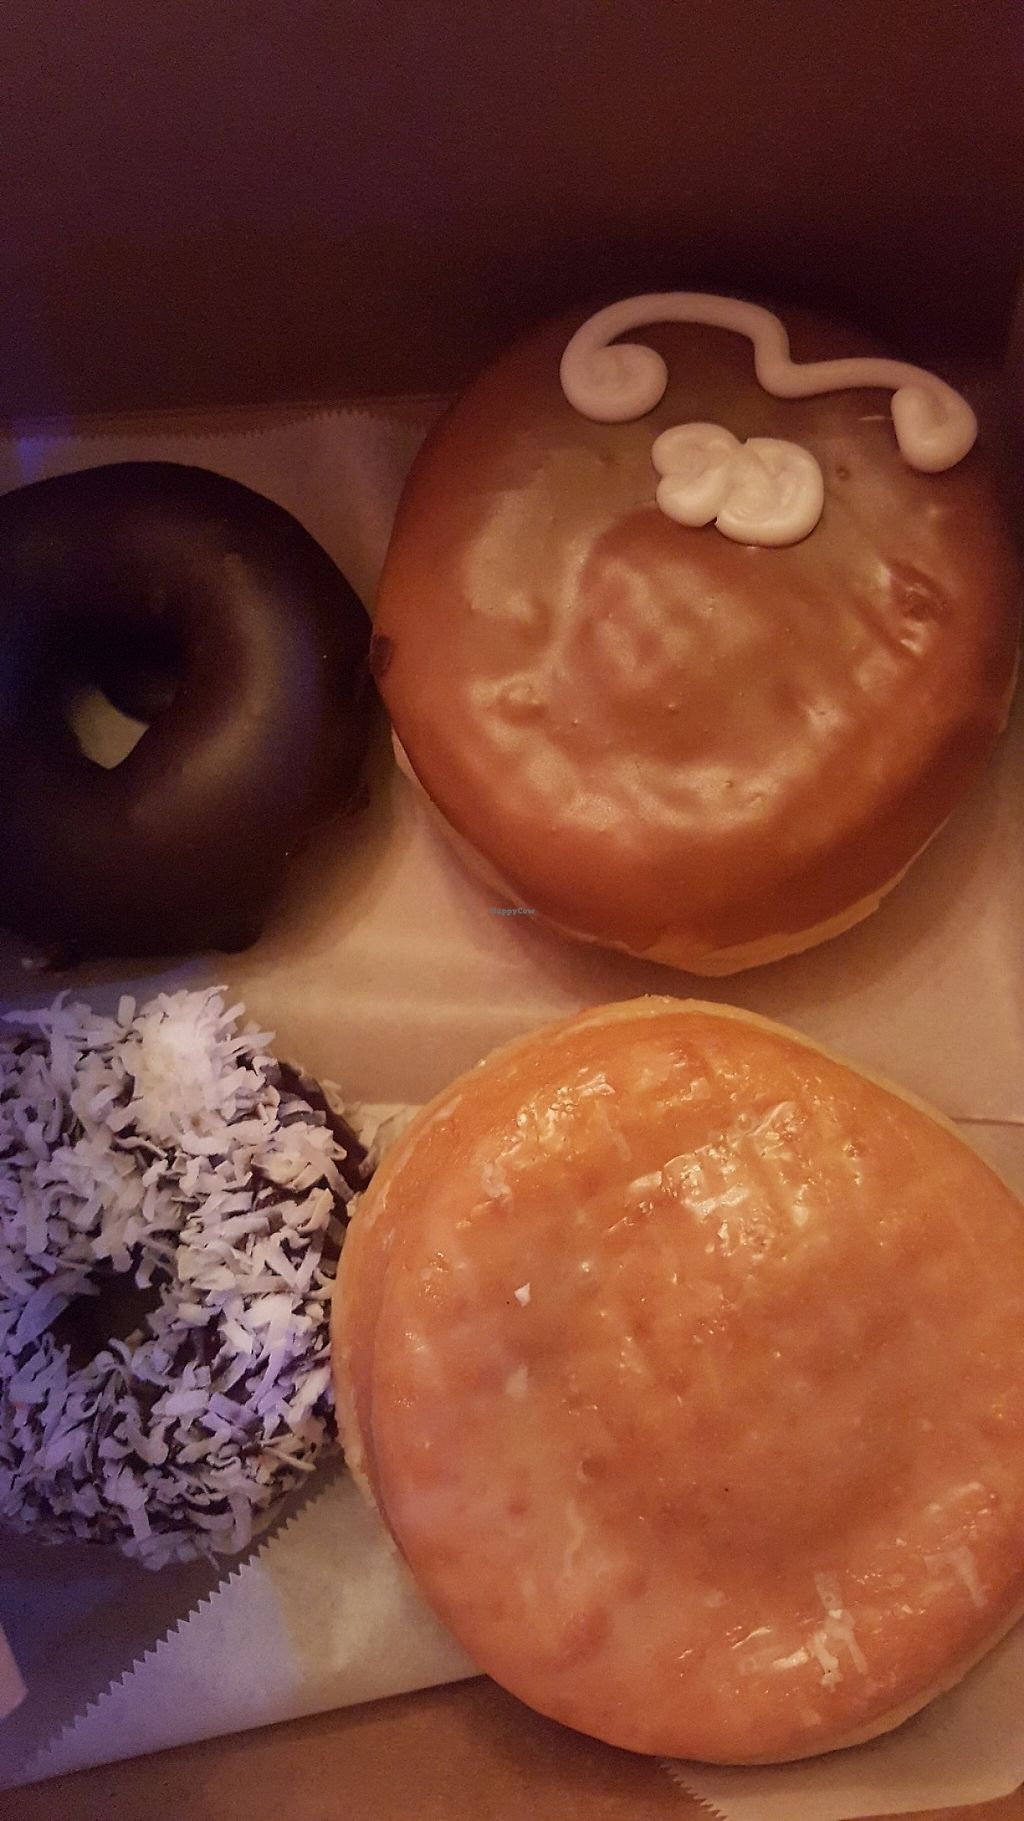 """Photo of Voodoo Doughnut Too  by <a href=""""/members/profile/Peacelovevegan4life"""">Peacelovevegan4life</a> <br/>All Vegan!  The top right is the maple donut with maple """"creme"""" filling, bottom right is filled with raspberry sauce. All were amazing <br/> May 31, 2017  - <a href='/contact/abuse/image/33115/264625'>Report</a>"""